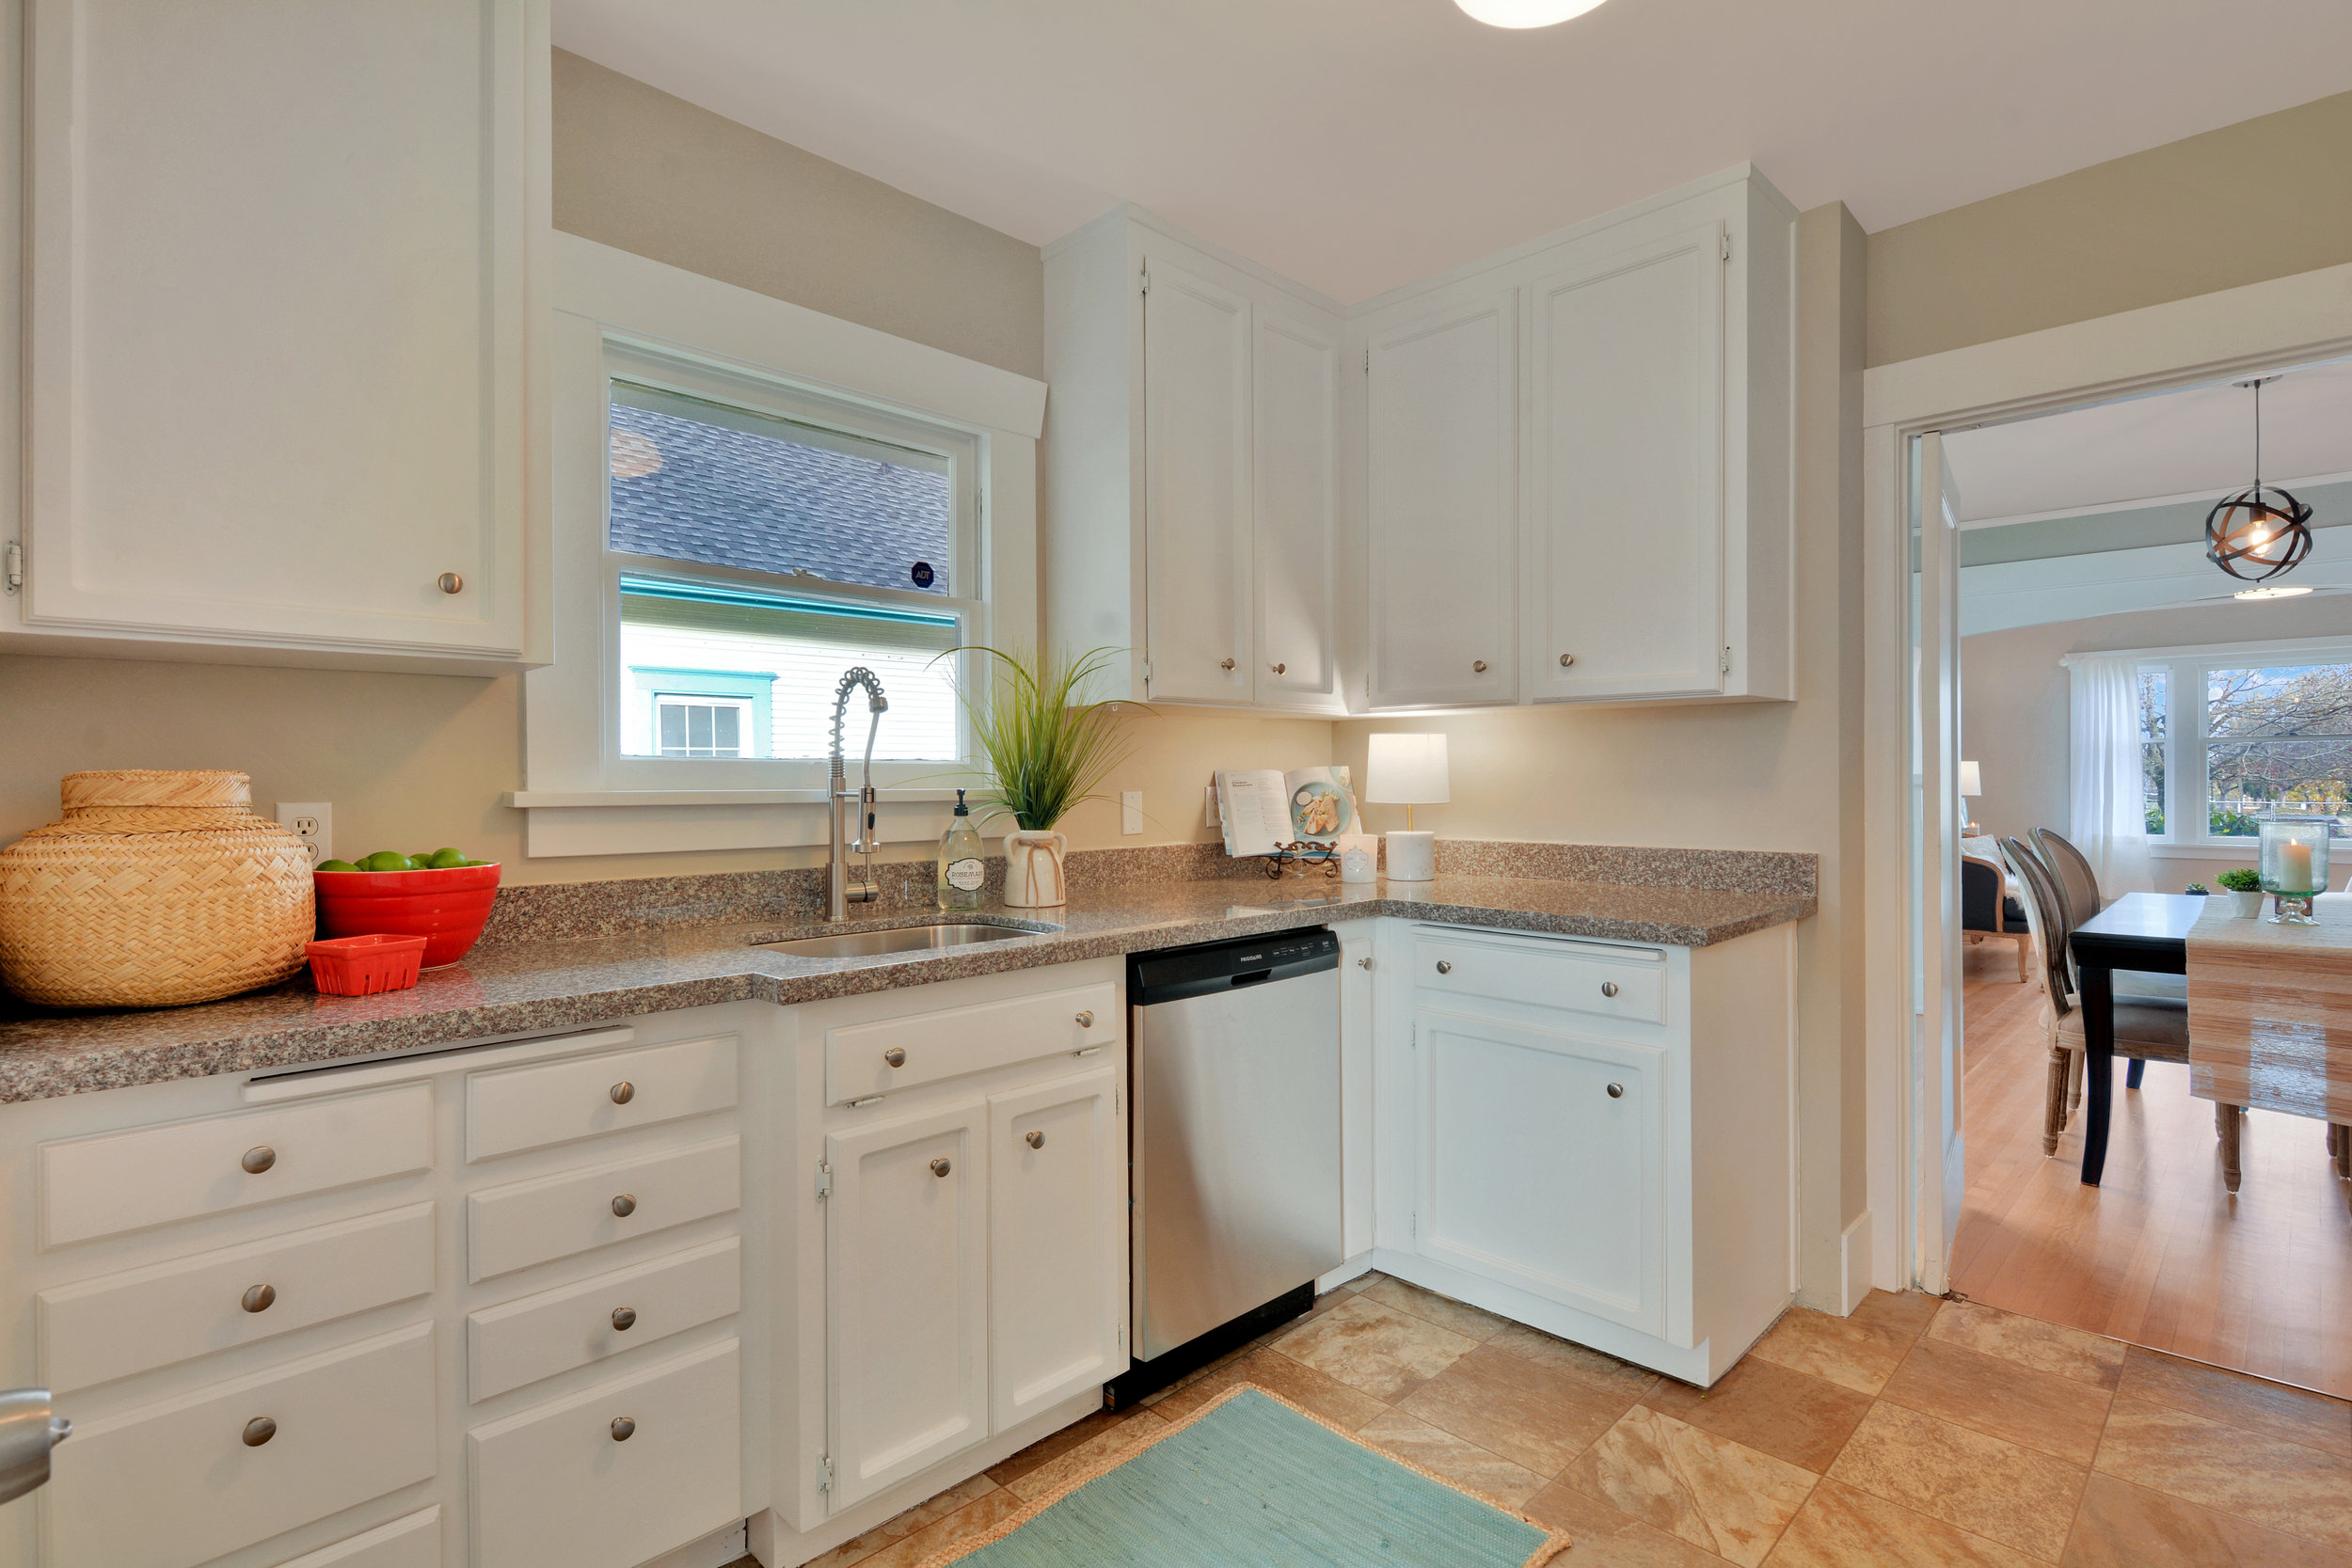 The eat-in kitchen features new countertops and new stainless undermount sink to match the full set of stainless appliances.